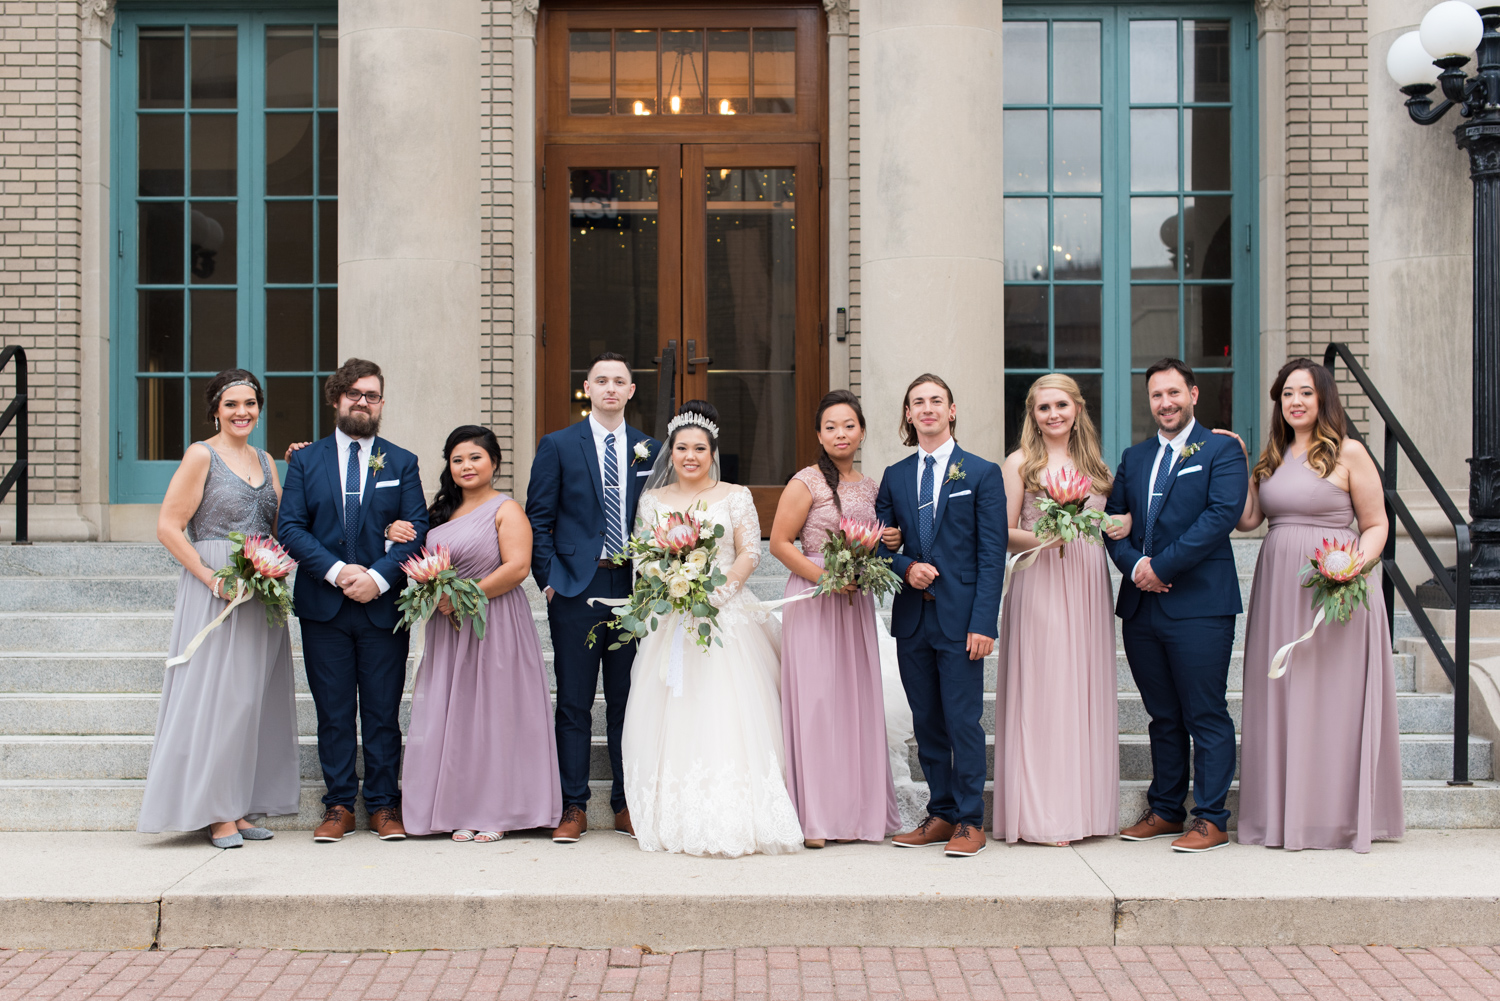 Rose Gold Wedding at Historic Post Office Virginia Harry Potter Themed Wedding-168.JPG